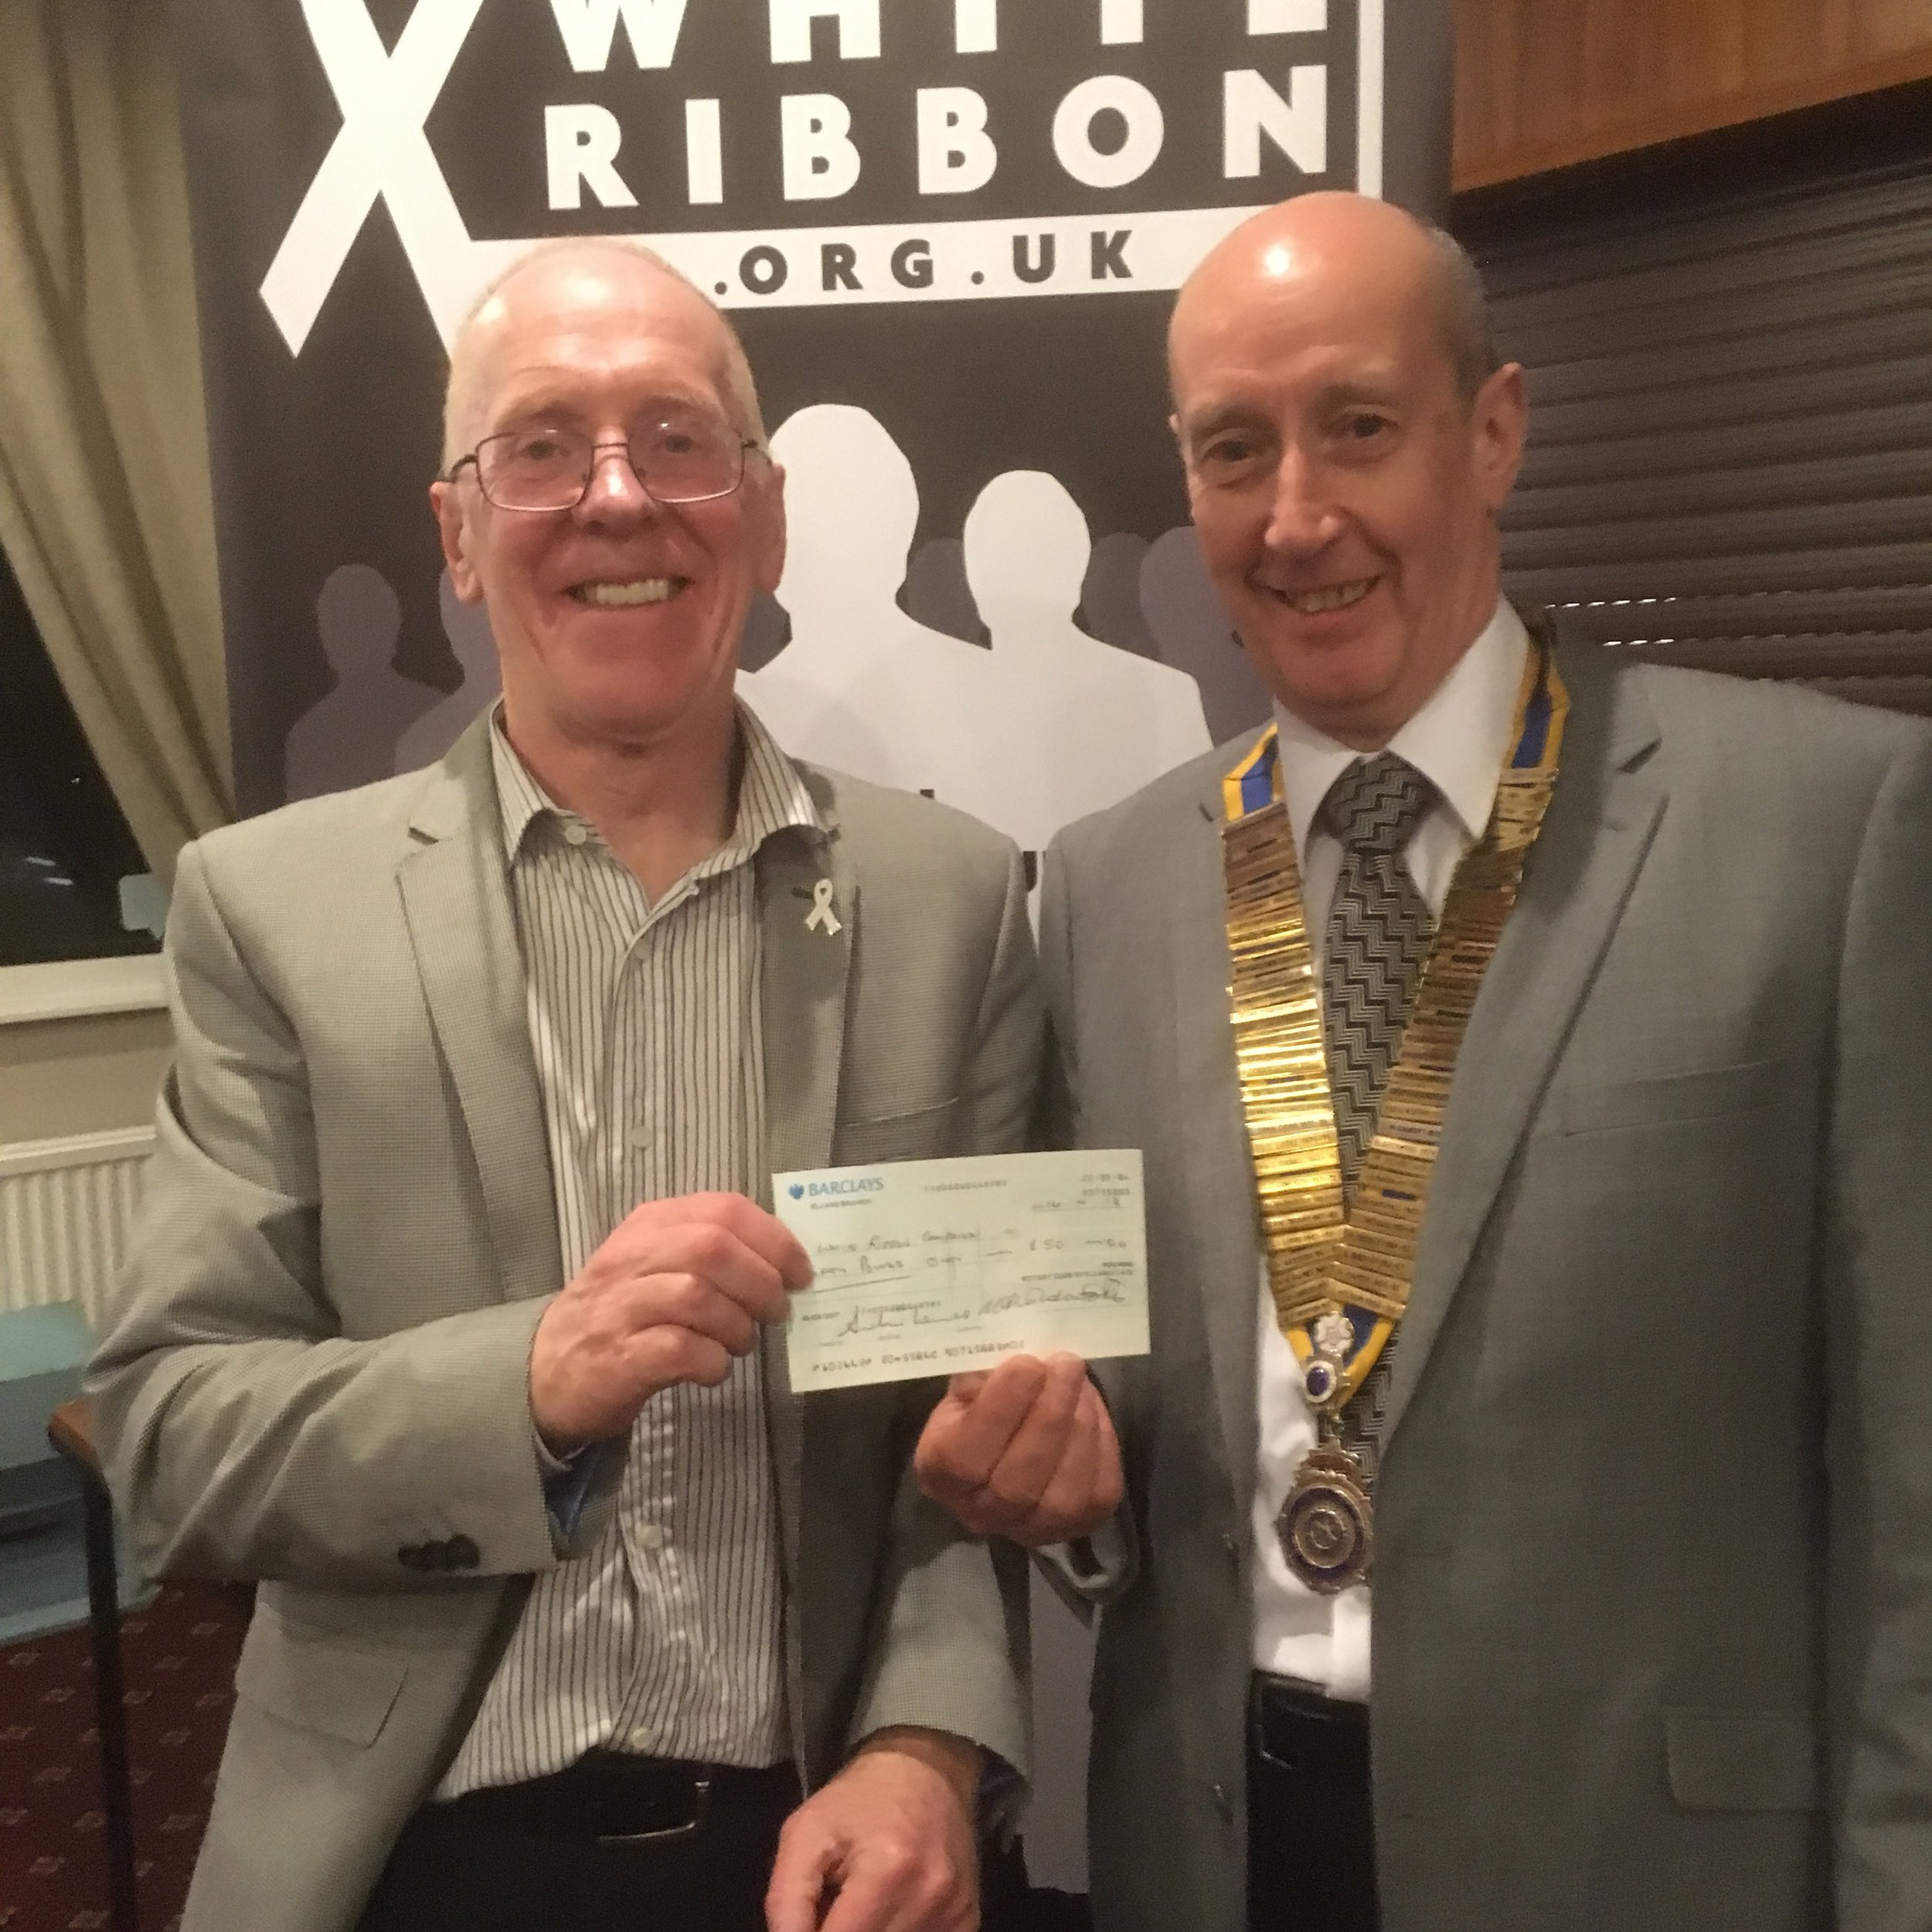 Elland Rotary presenting a cheque after hearing about the activities of White Ribbon UK  from Chris Green OBE